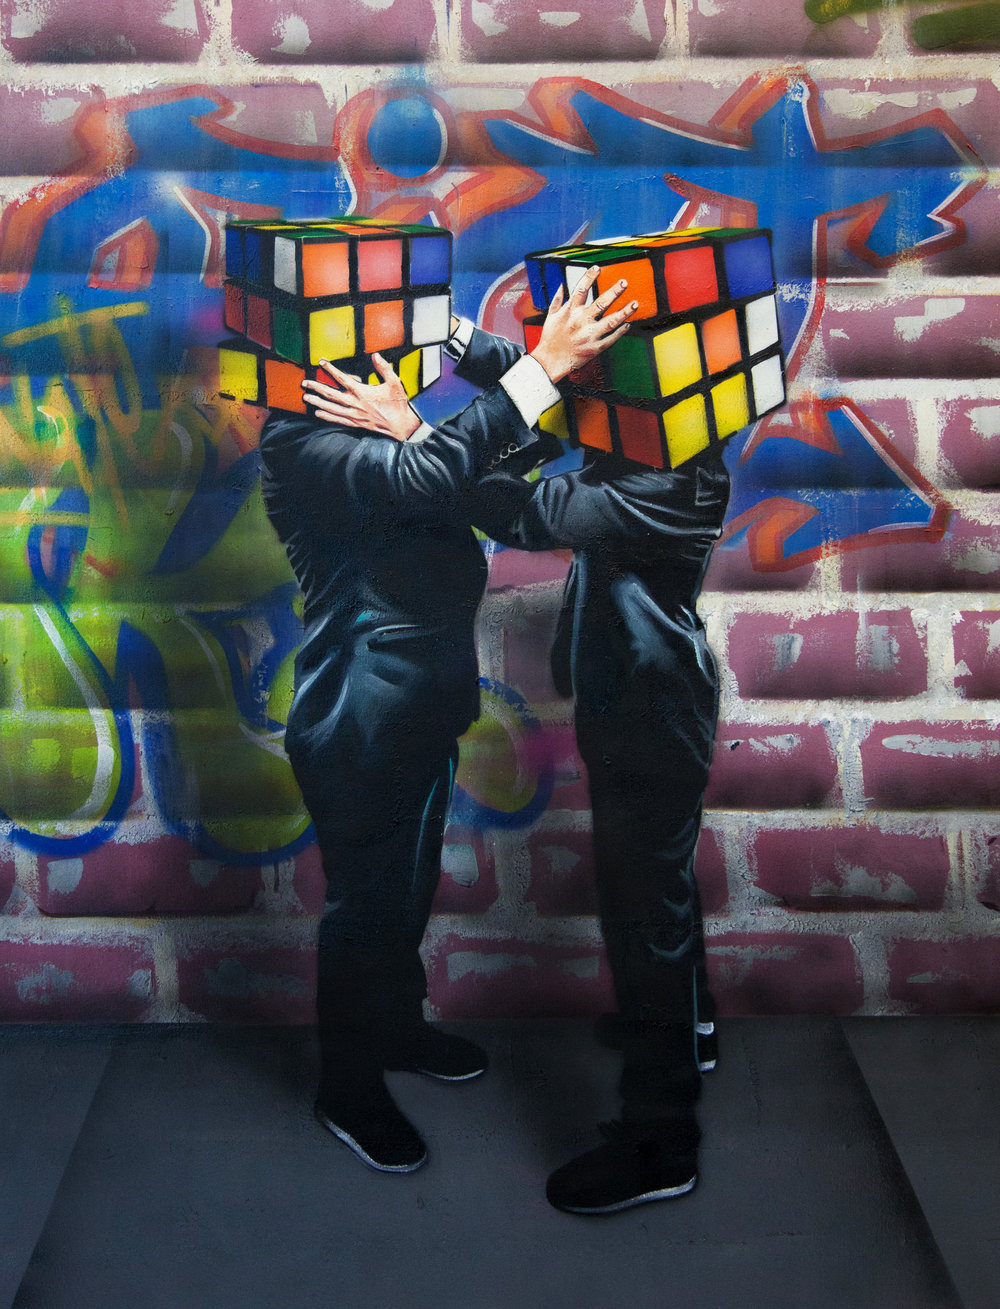 rubix cube (1 of 1).JPG